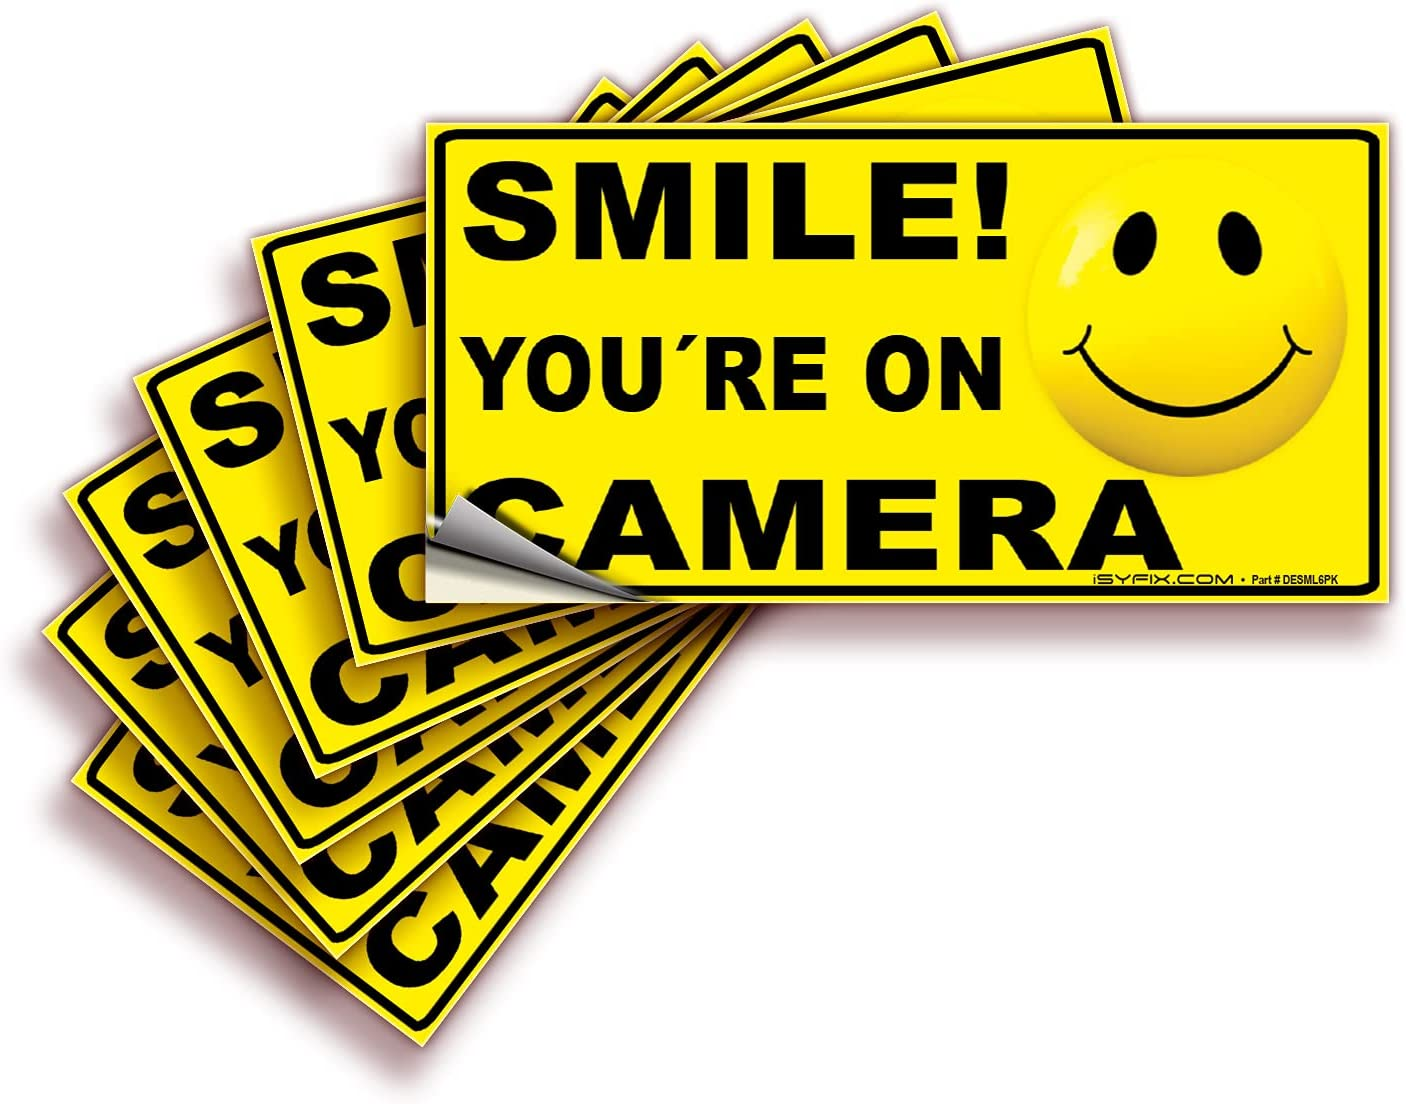 Smile Purchase You're On Camera Signs Stickers famous Premiu 4x2 6 Inch Pack –